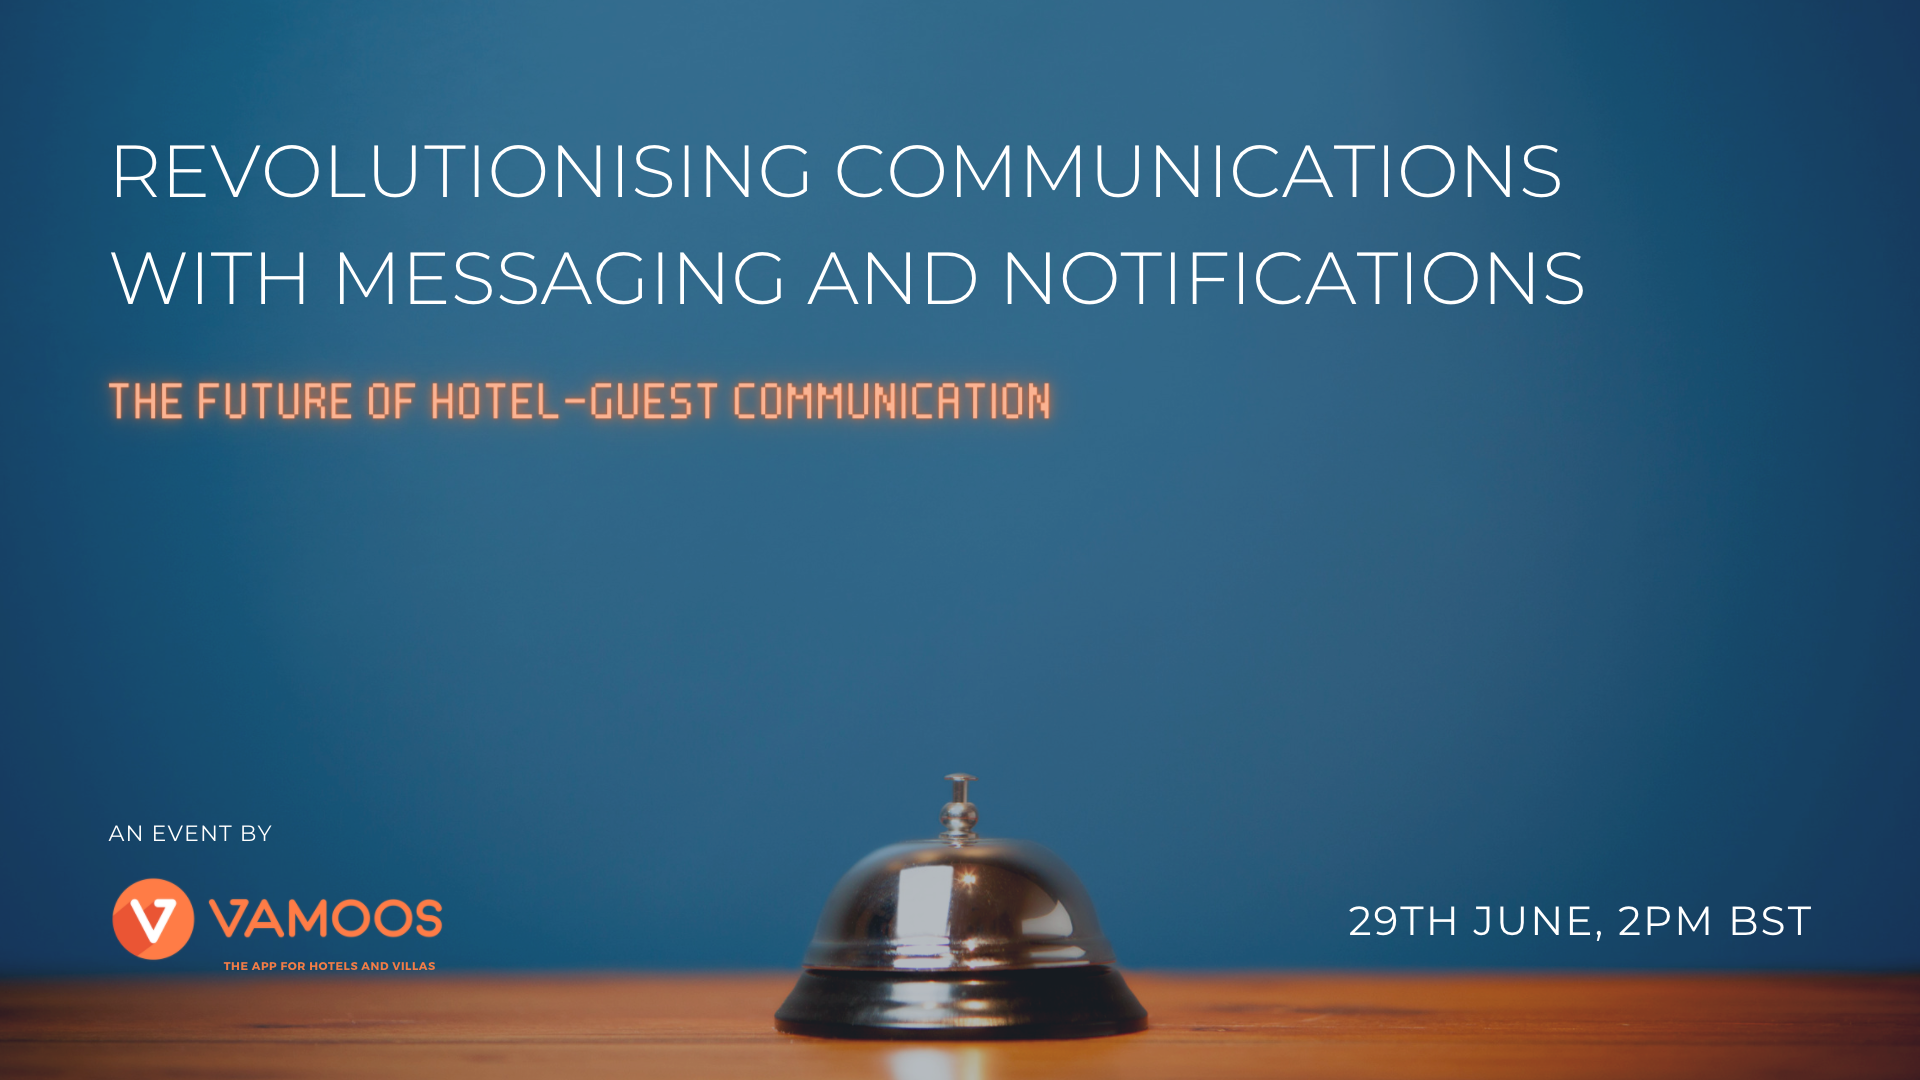 VIRTUAL EVENT: The Future of Hotel-Guest Communication